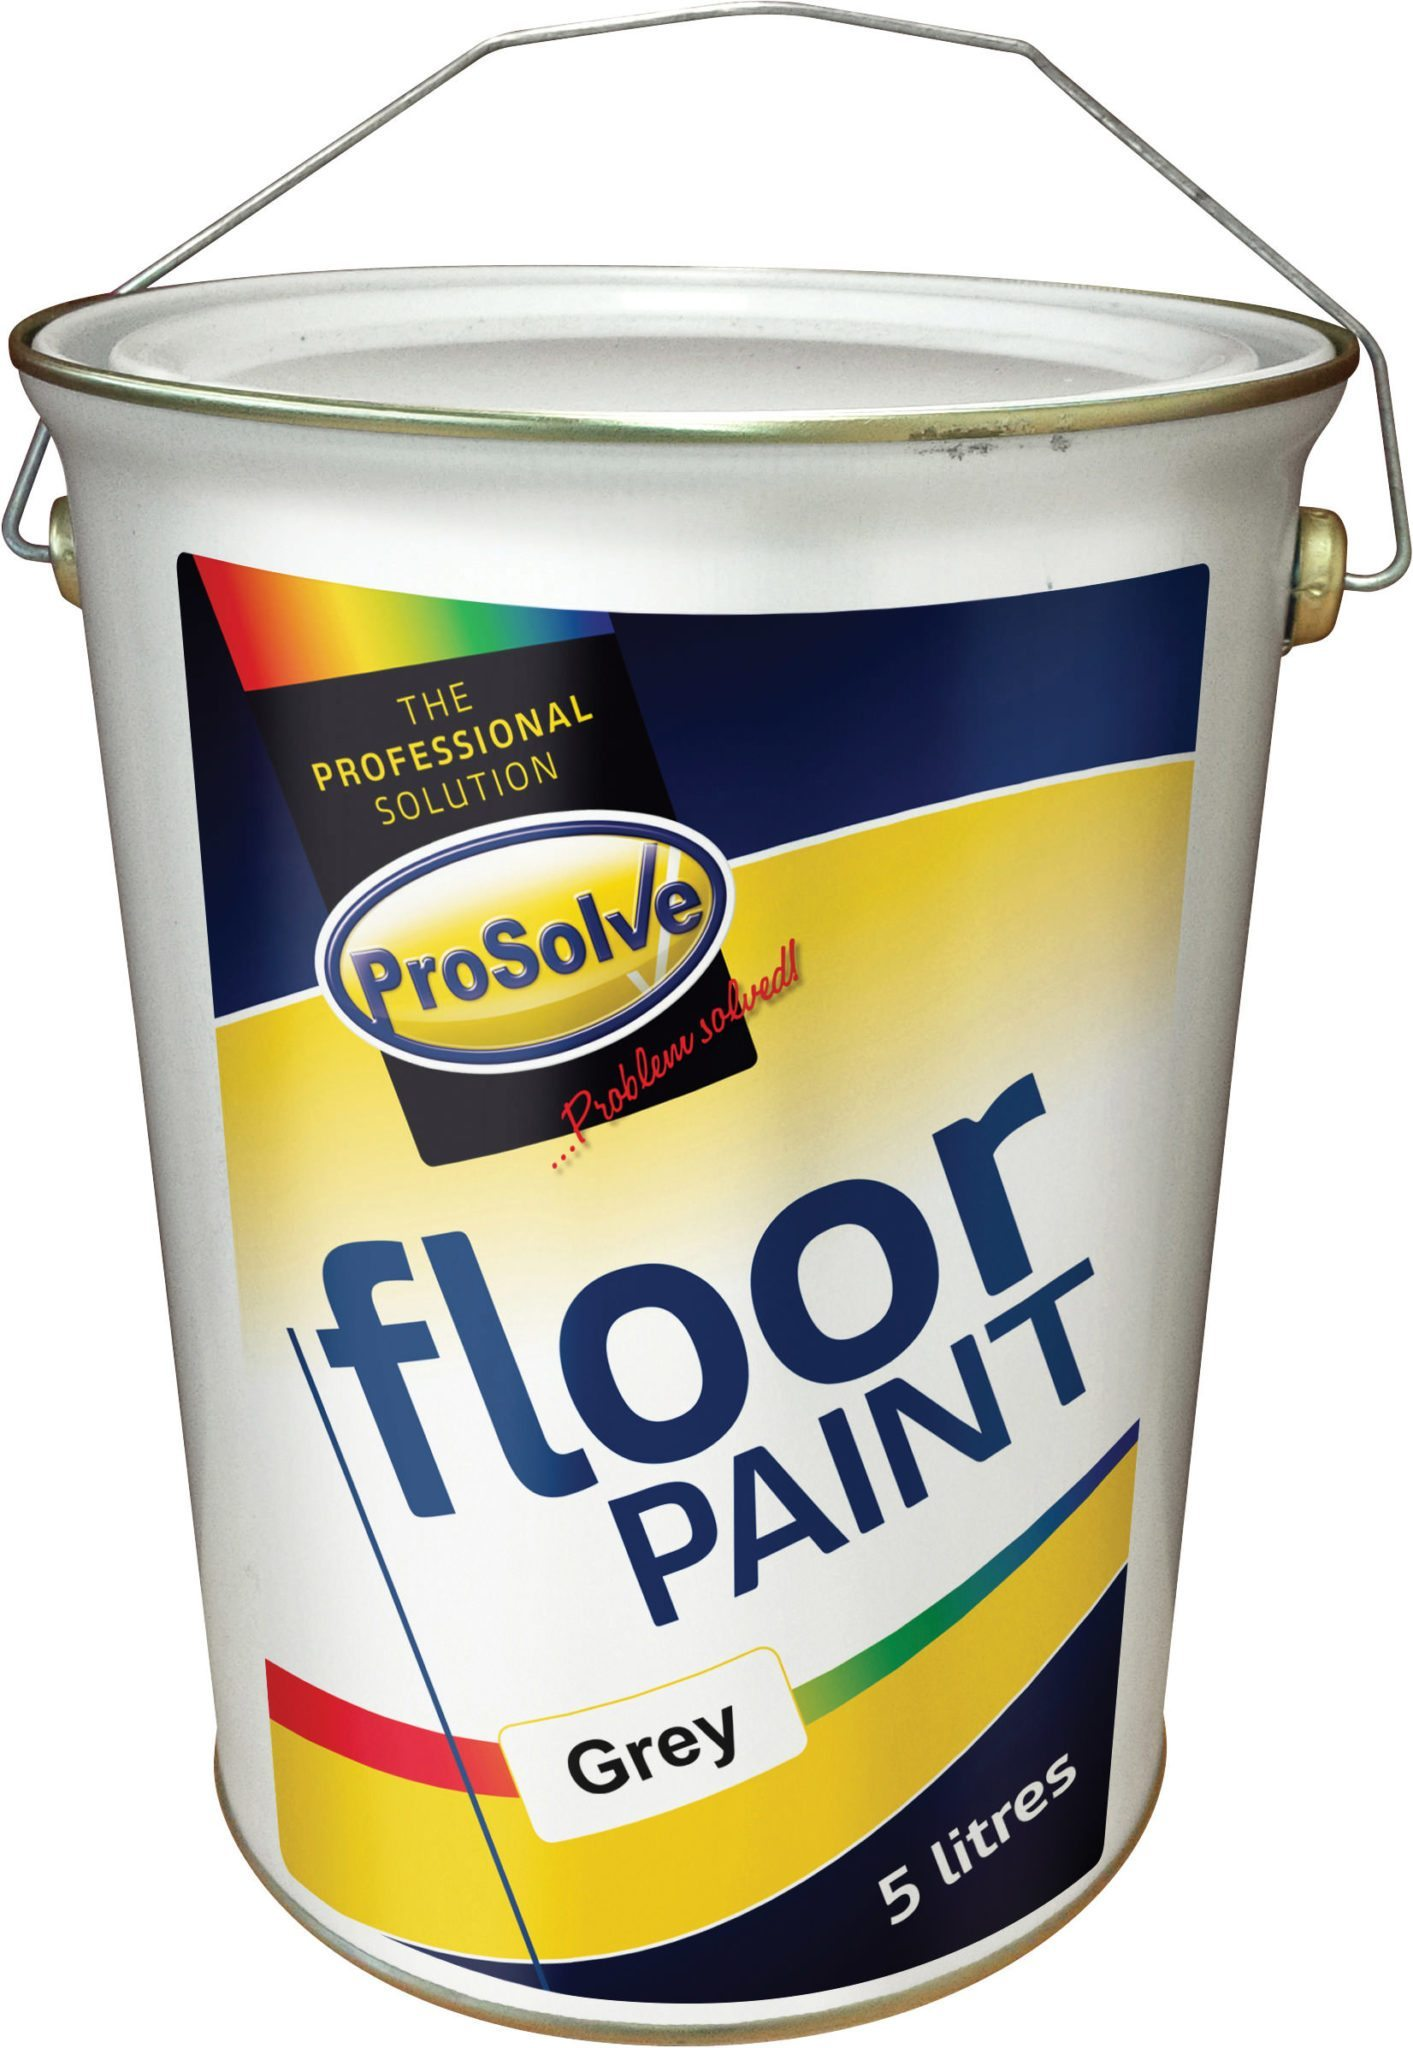 Grey Floor Paint 5L